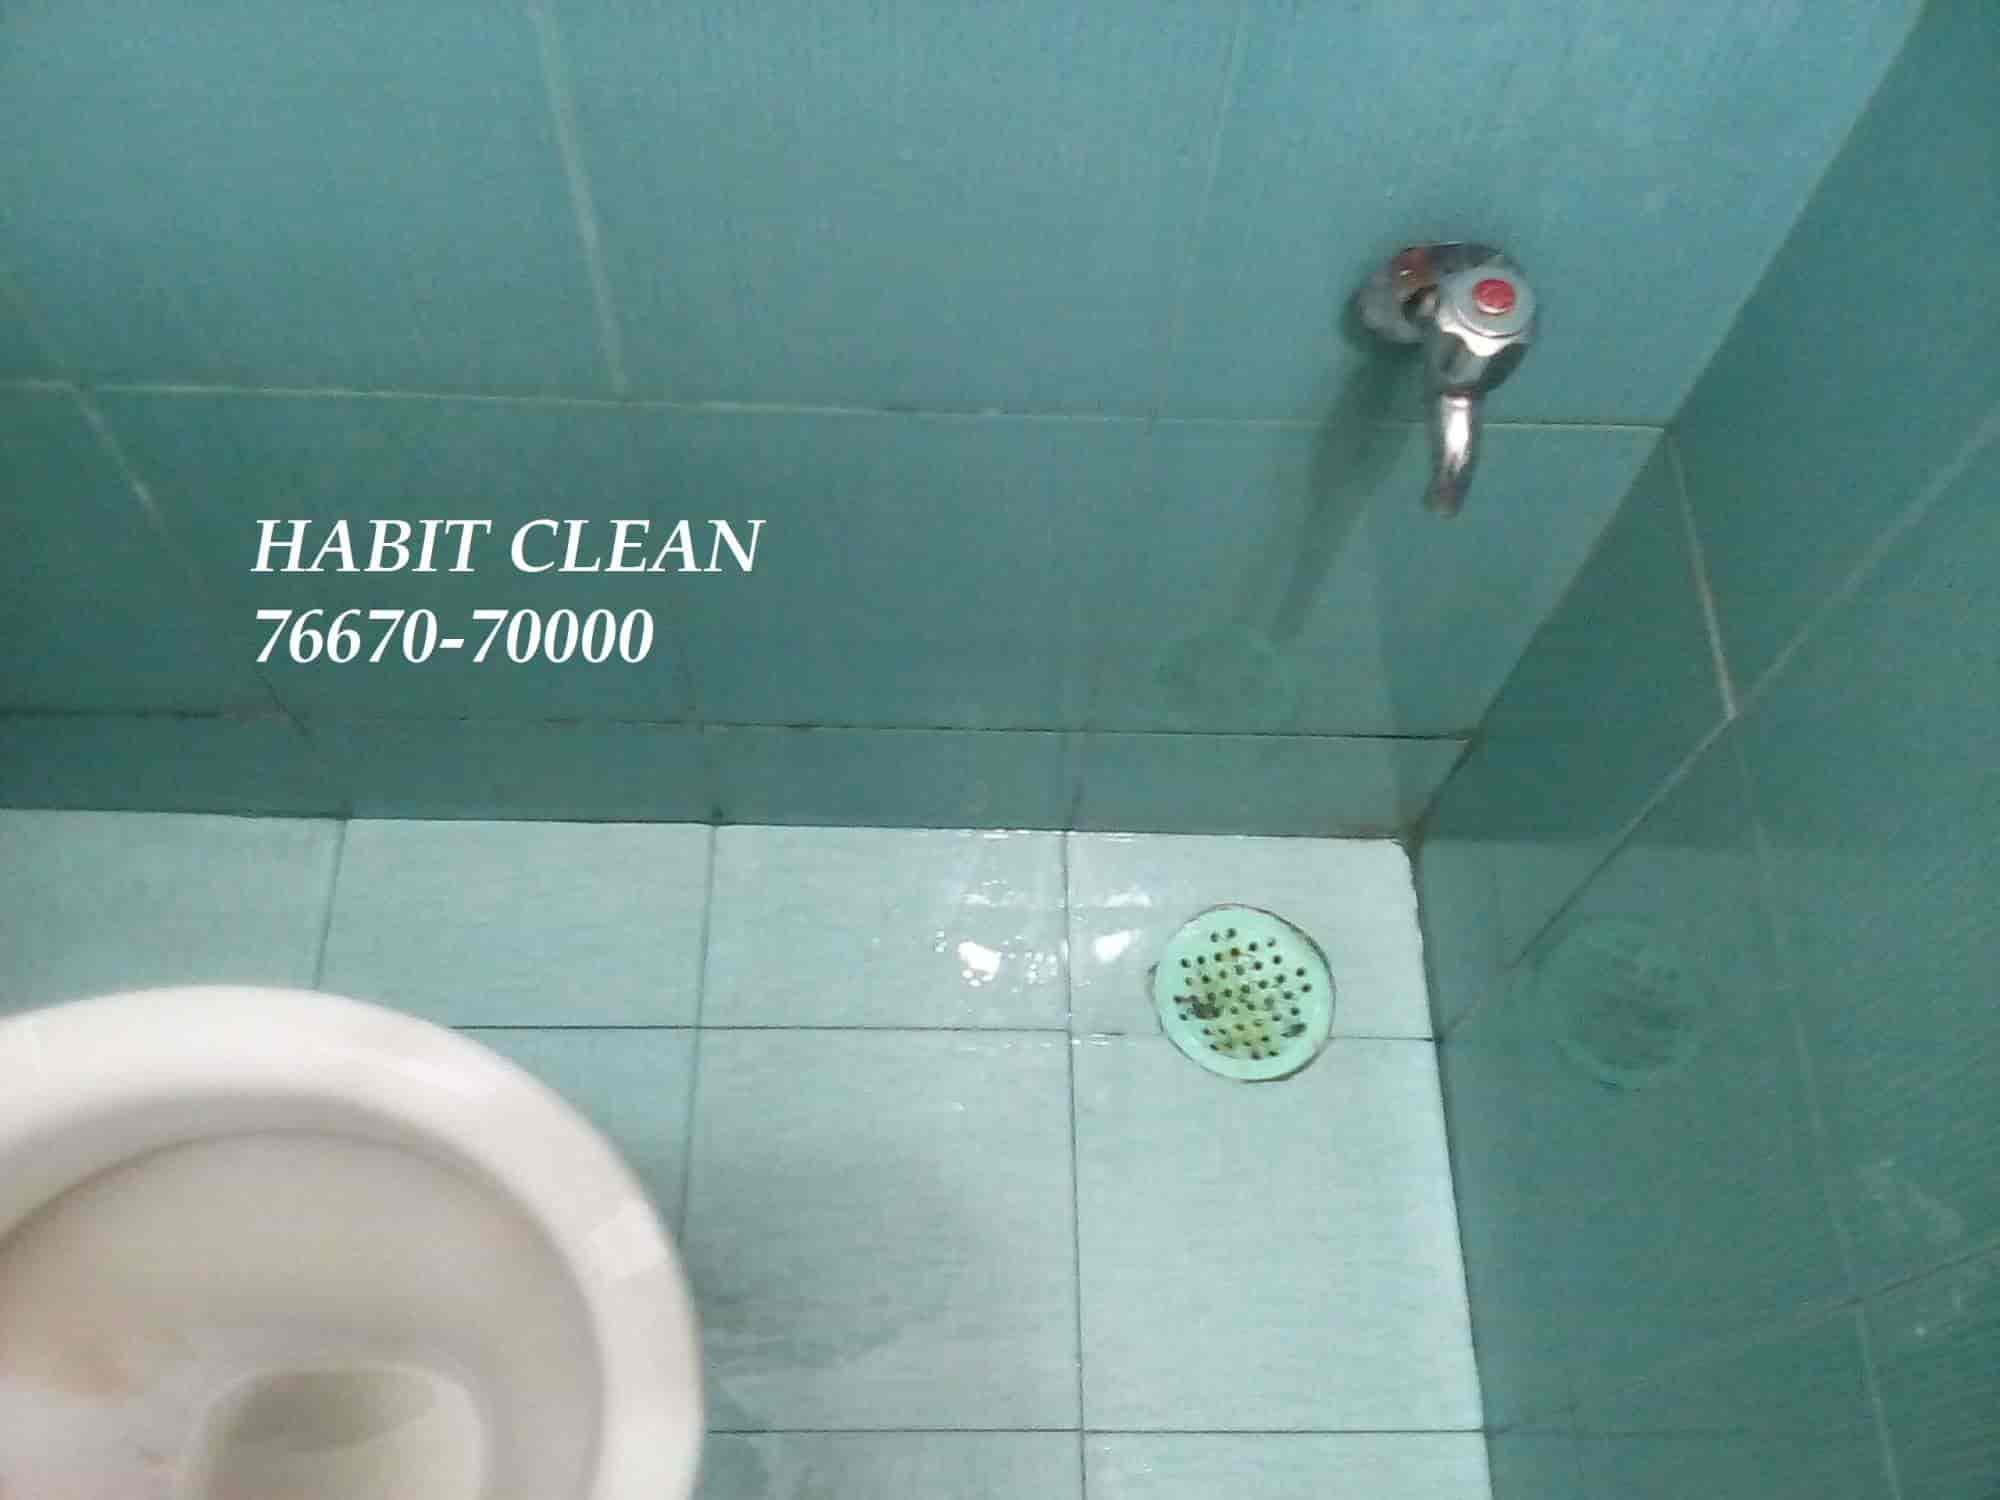 Best Bathroom Cleaning Services In Chennai Thedancingparentcom - Home bathroom cleaning service